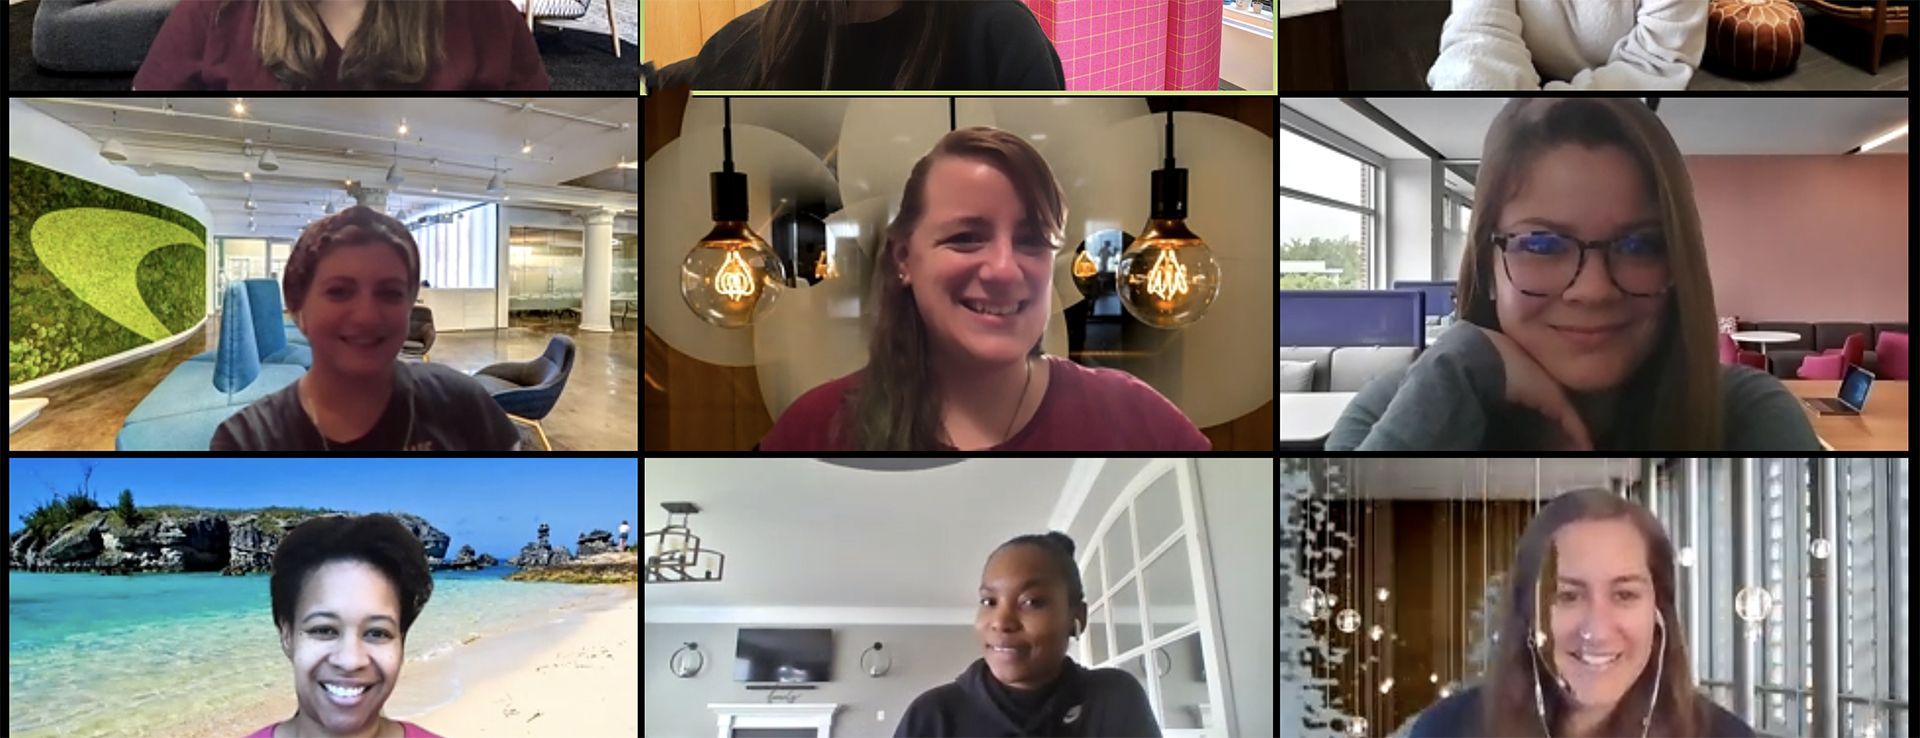 How To Add A Virtual Background To Your Zoom Meeting